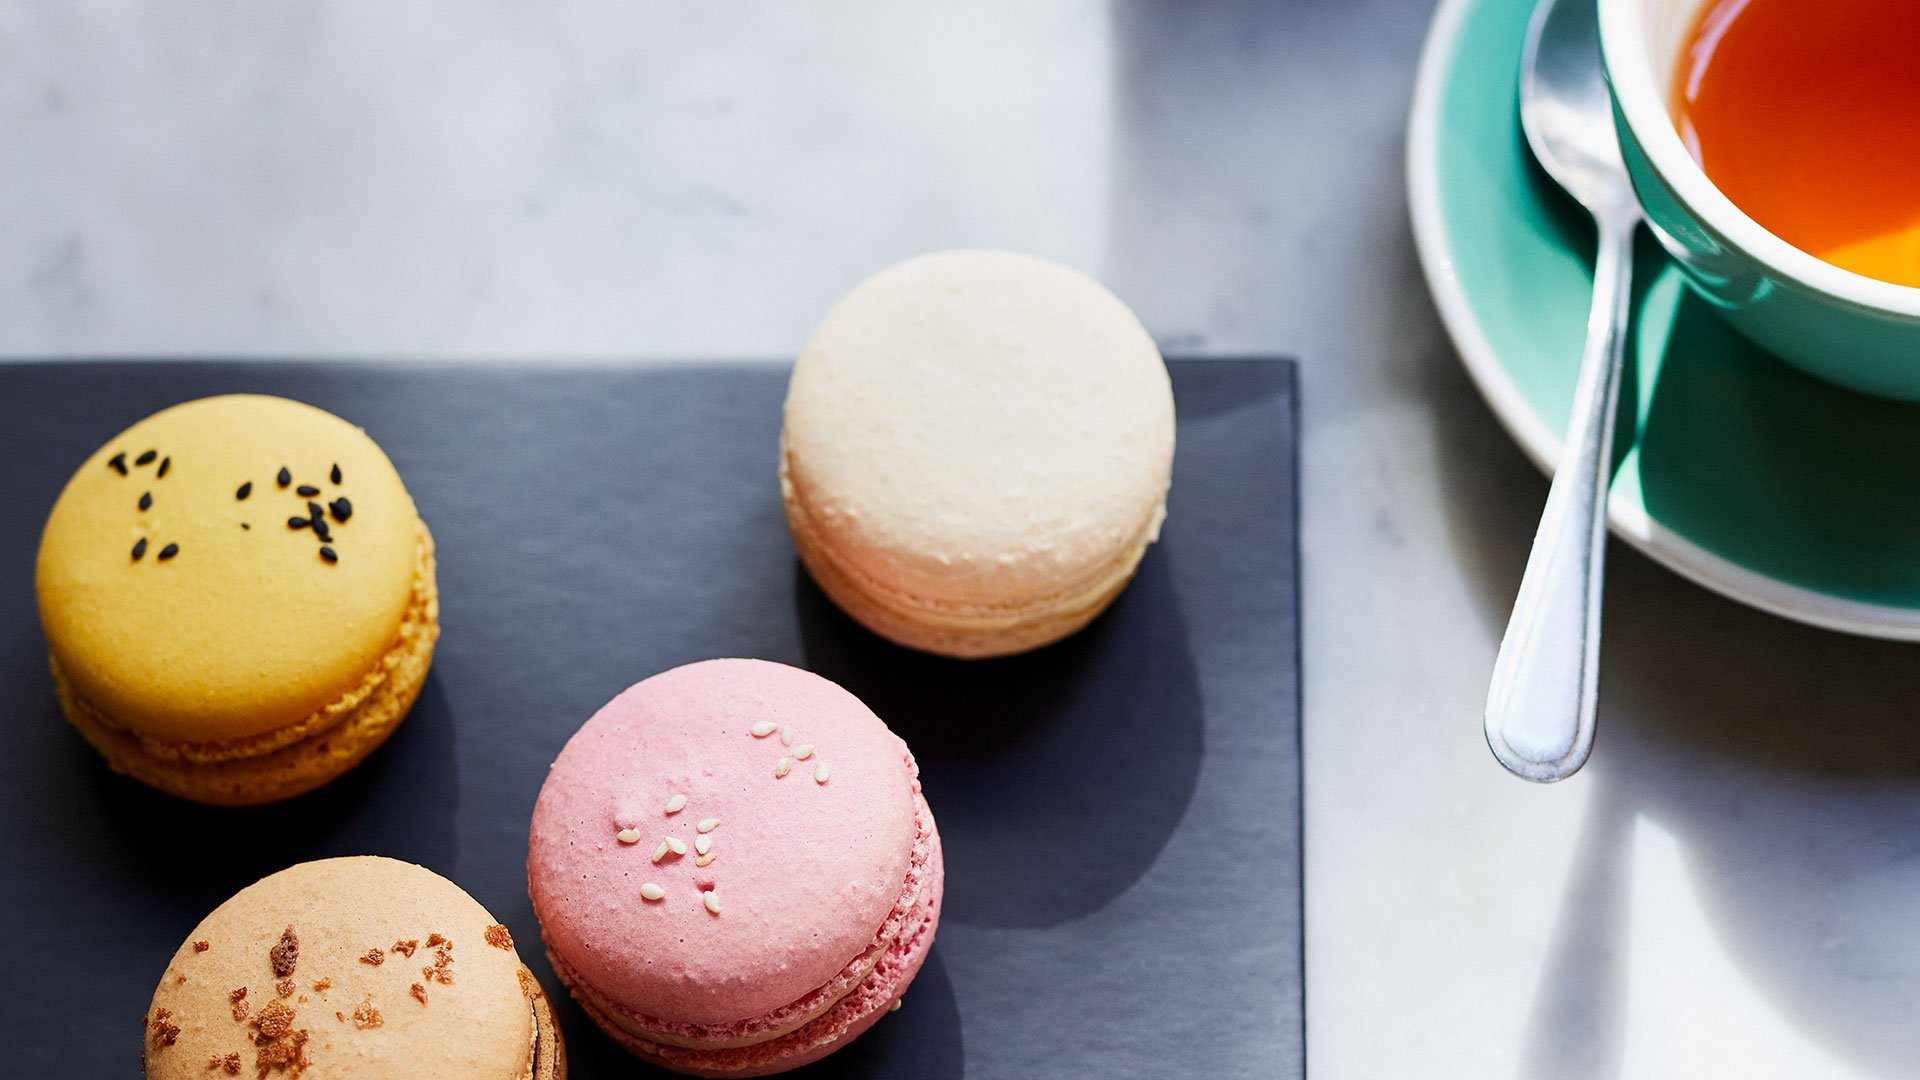 Macarons and cup of tea